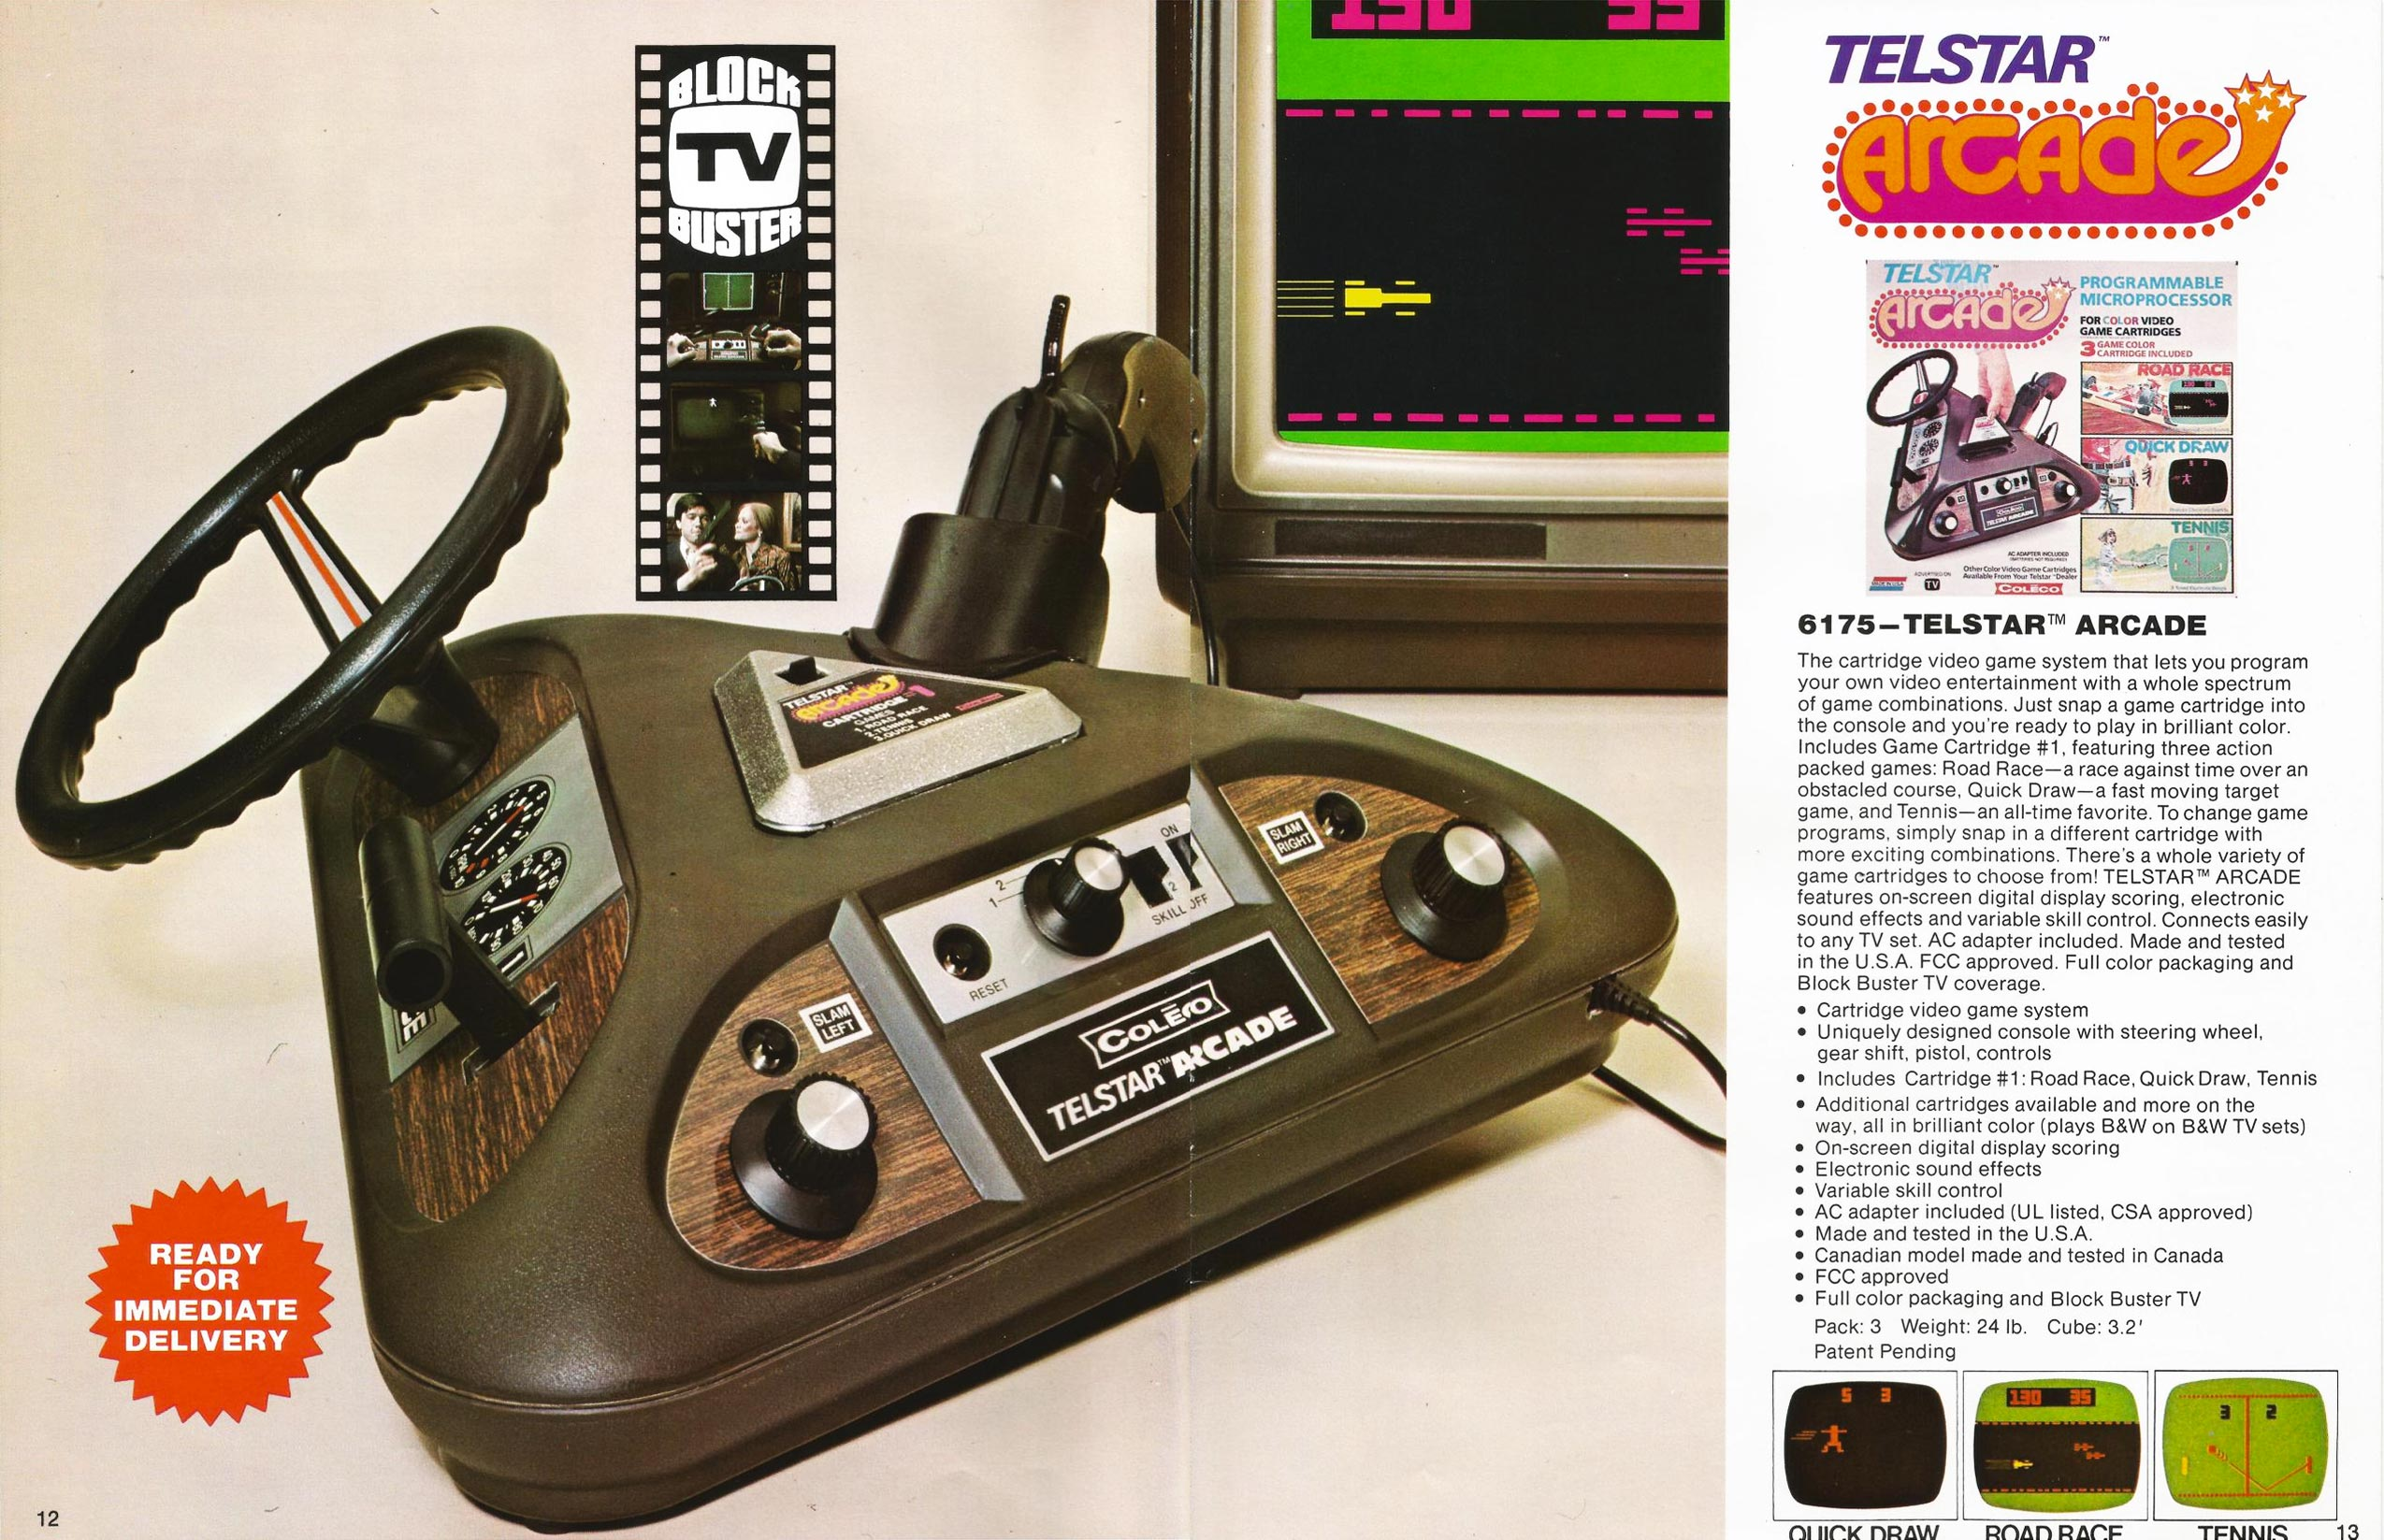 Telstar Arcade, a PONG-like video game console by Coleco